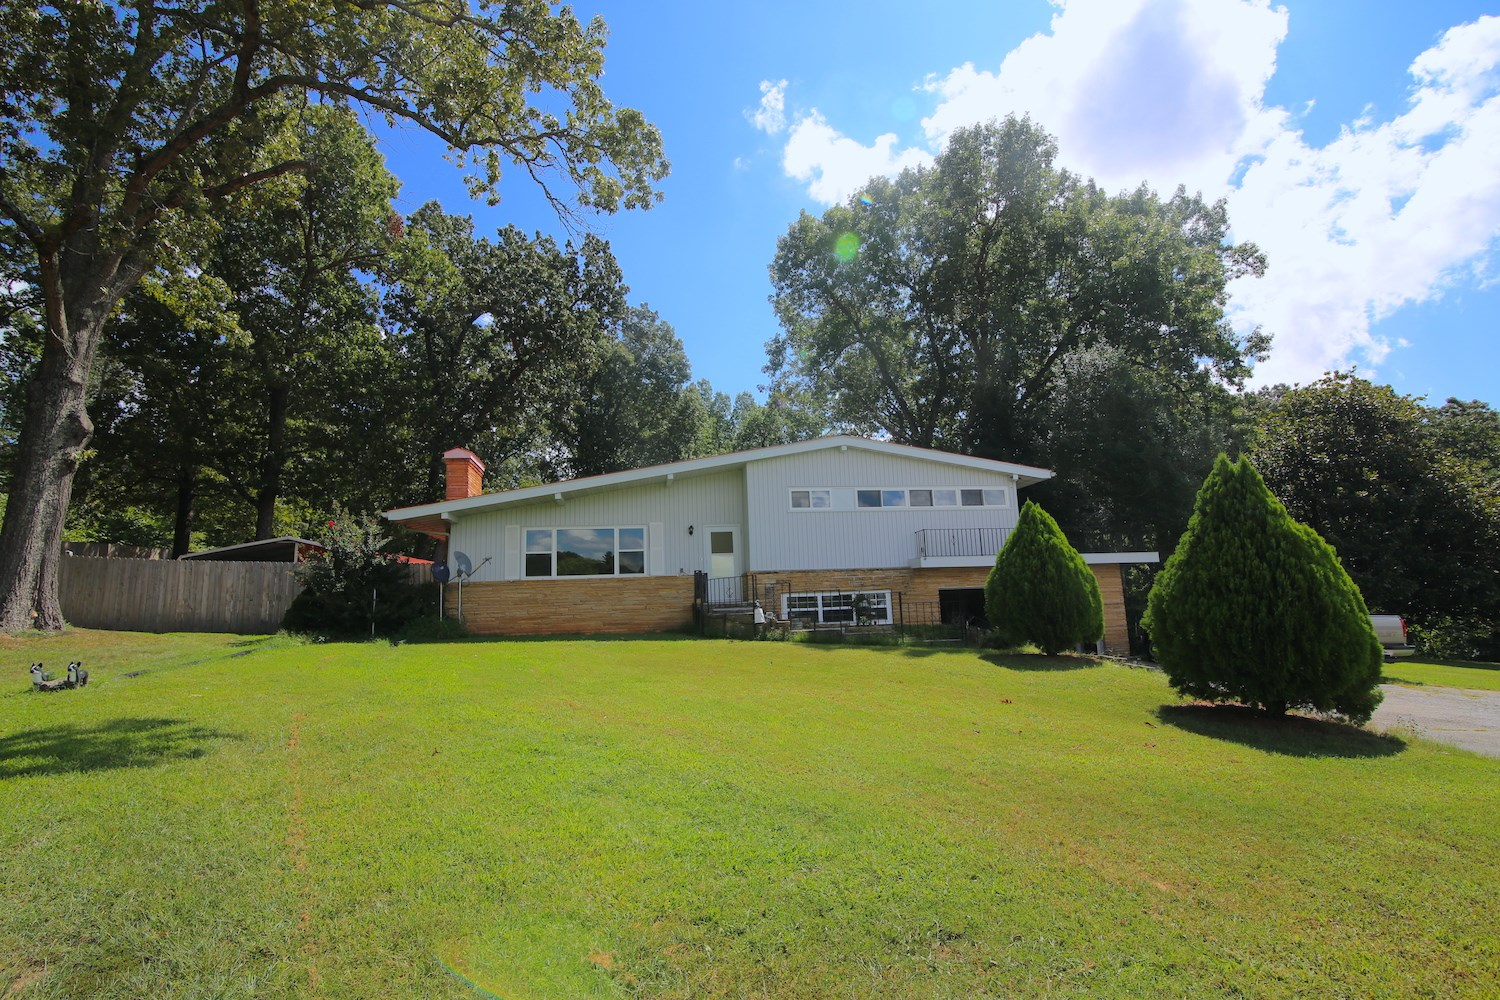 Home for Sale in Thayer School District